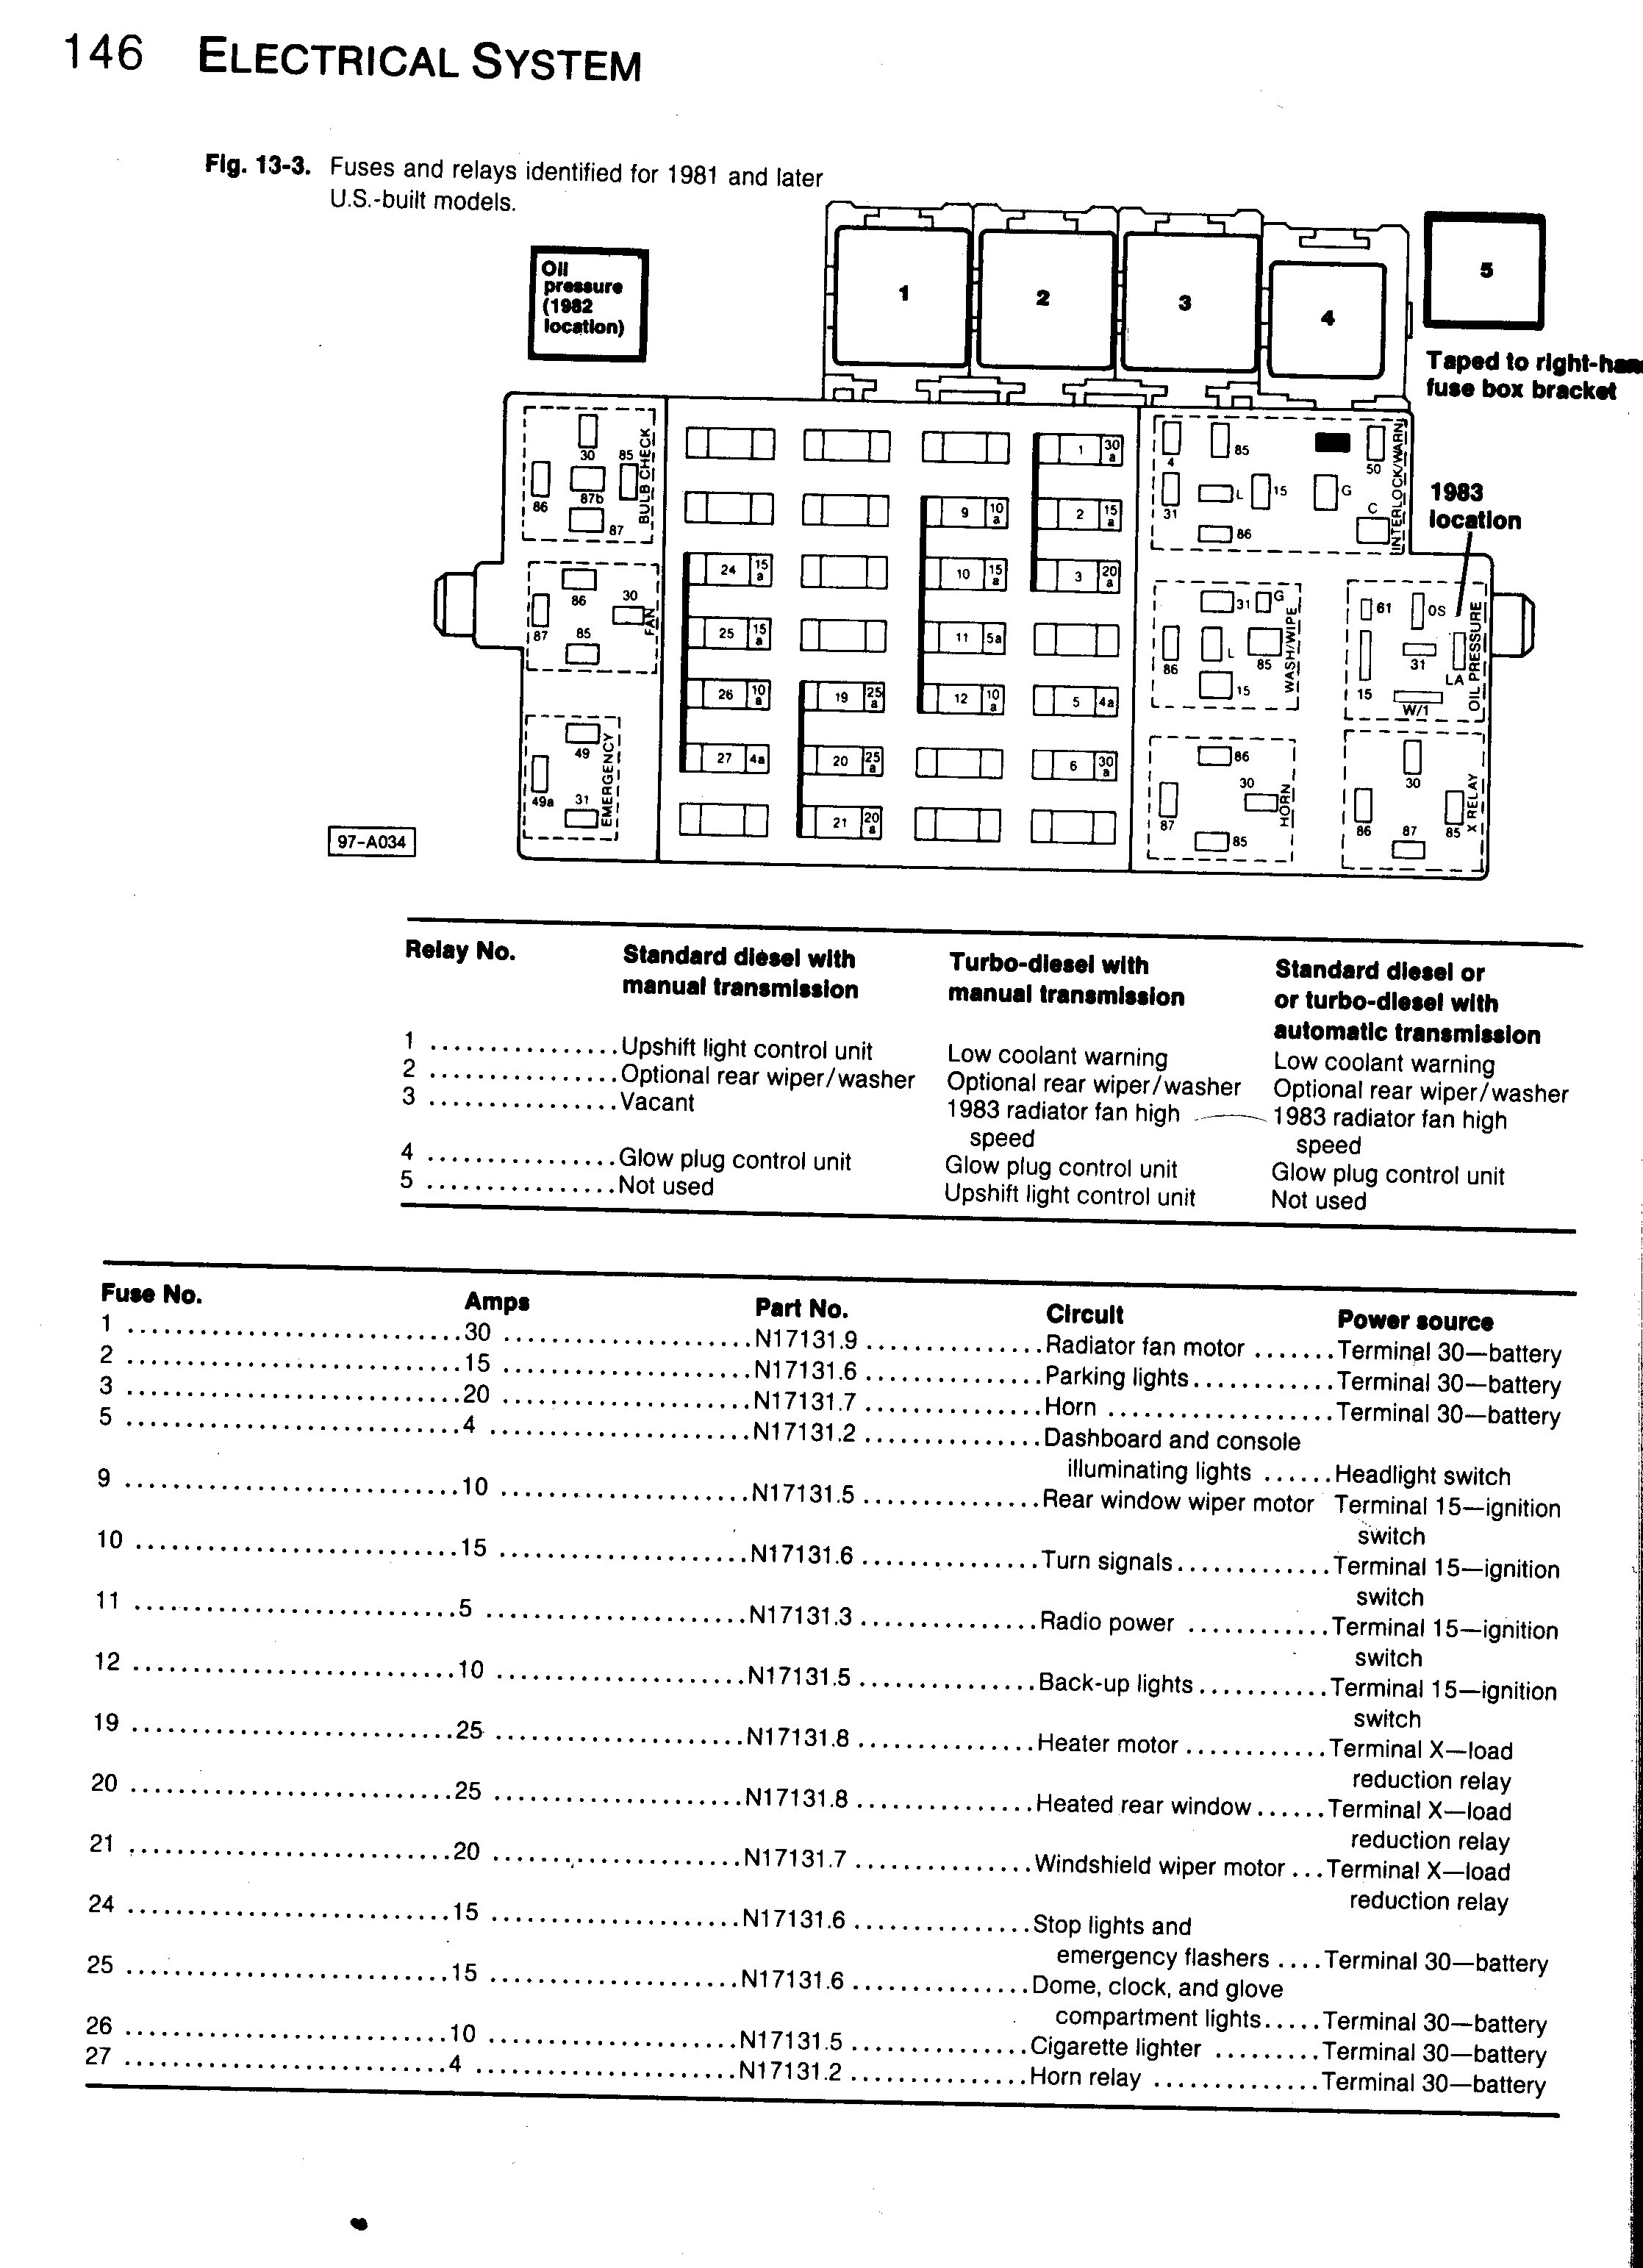 2001 F250 Diesel Fuse Panel Diagram Wiring Library 2004 F450